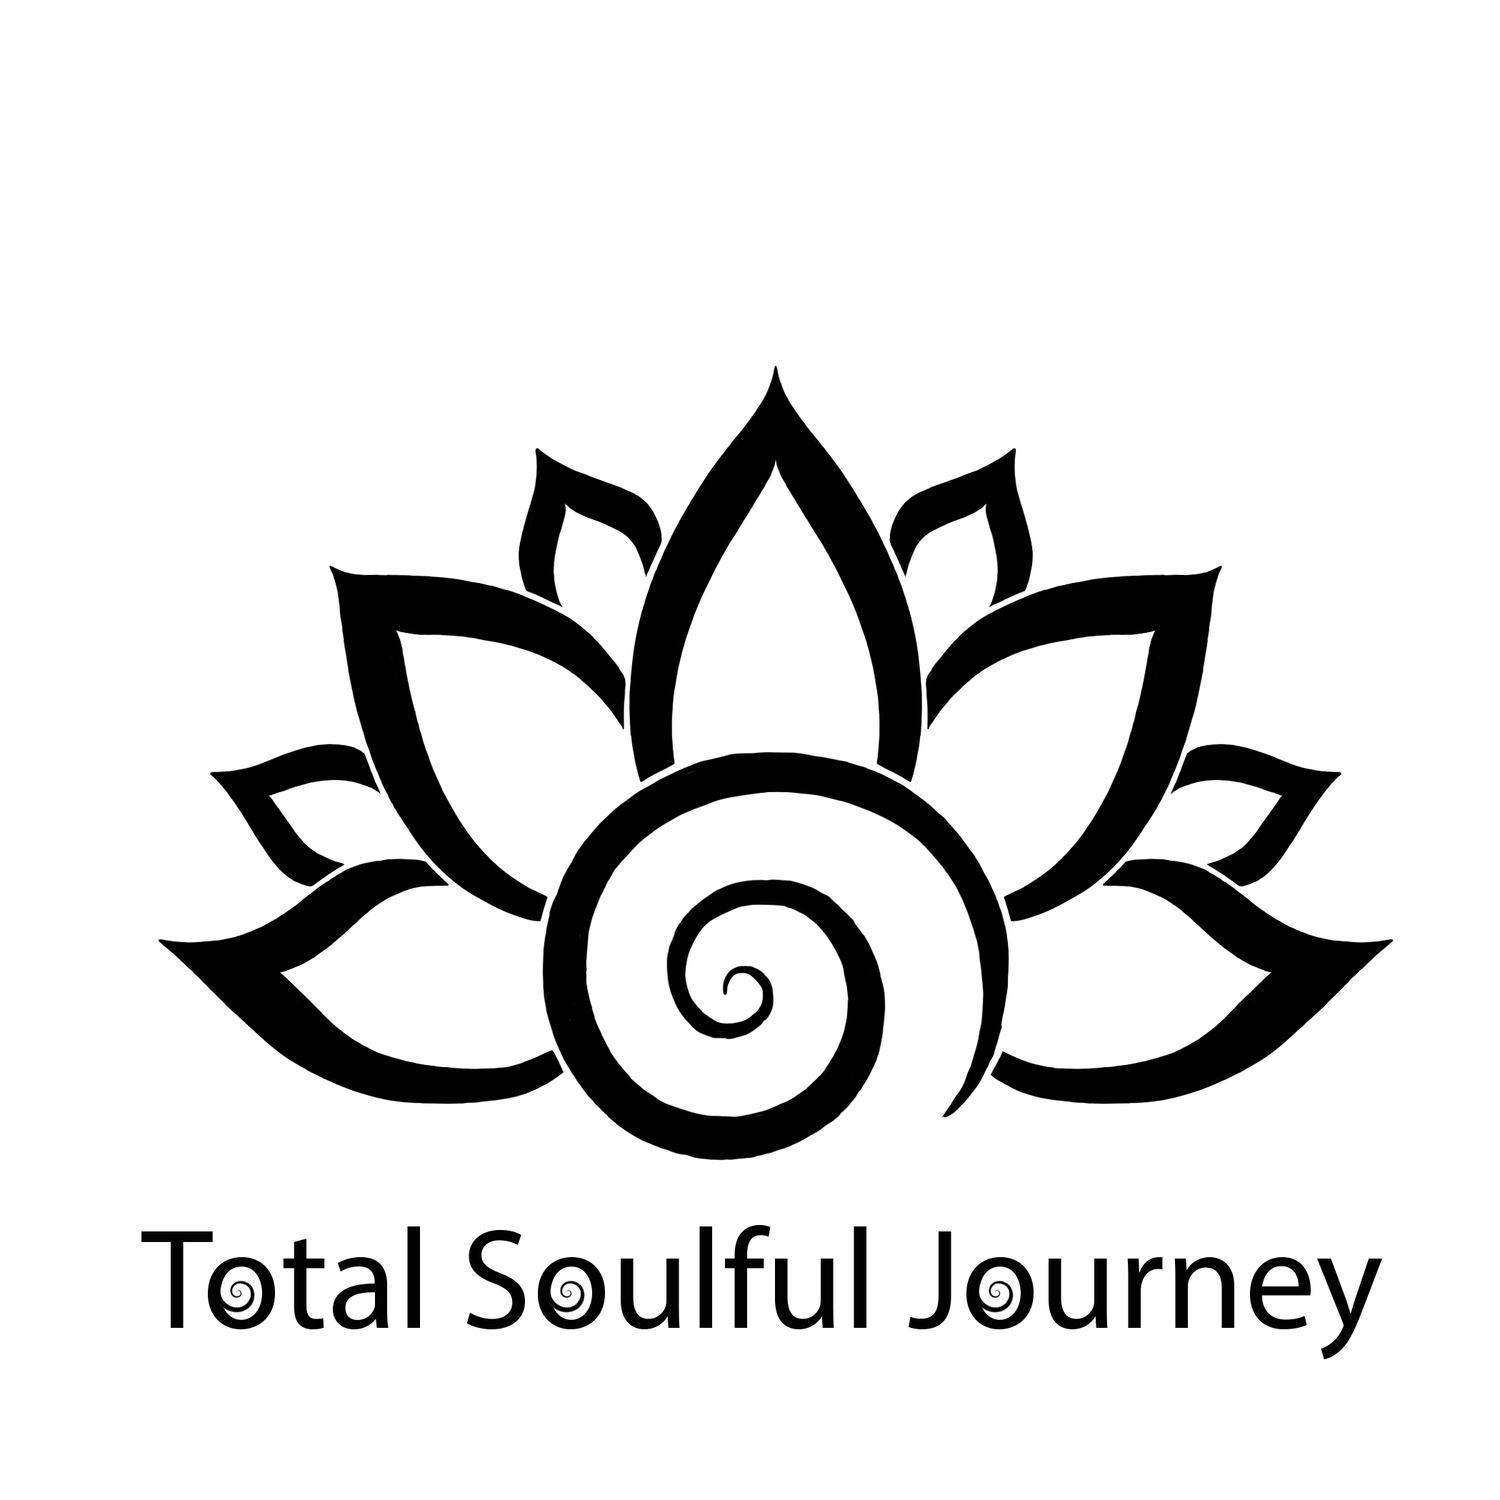 Total Soulful Journey